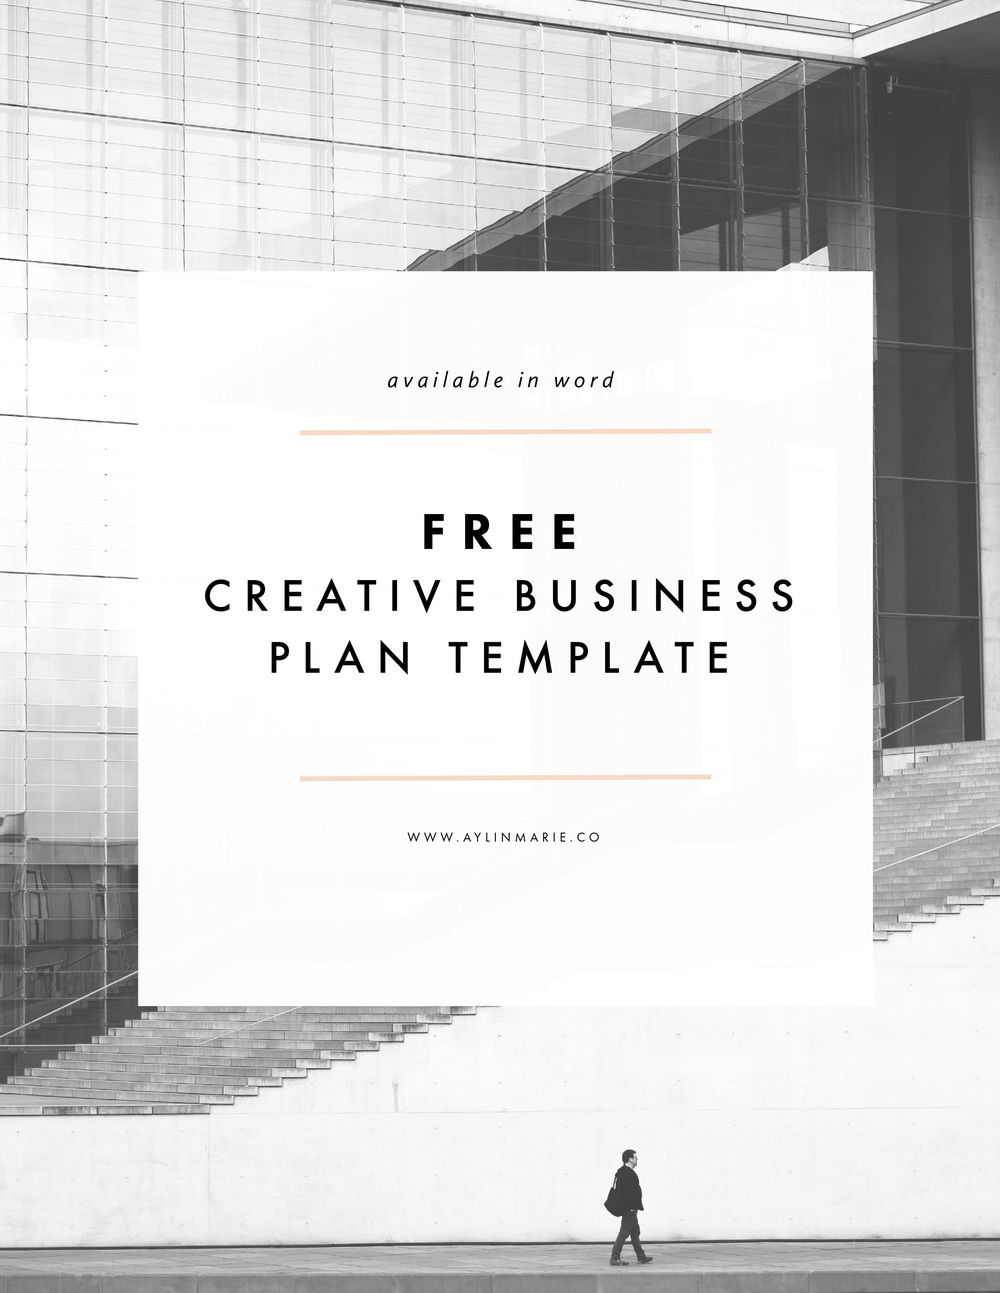 Freebie creative business plan template aylin marie freebie creative business plan template friedricerecipe